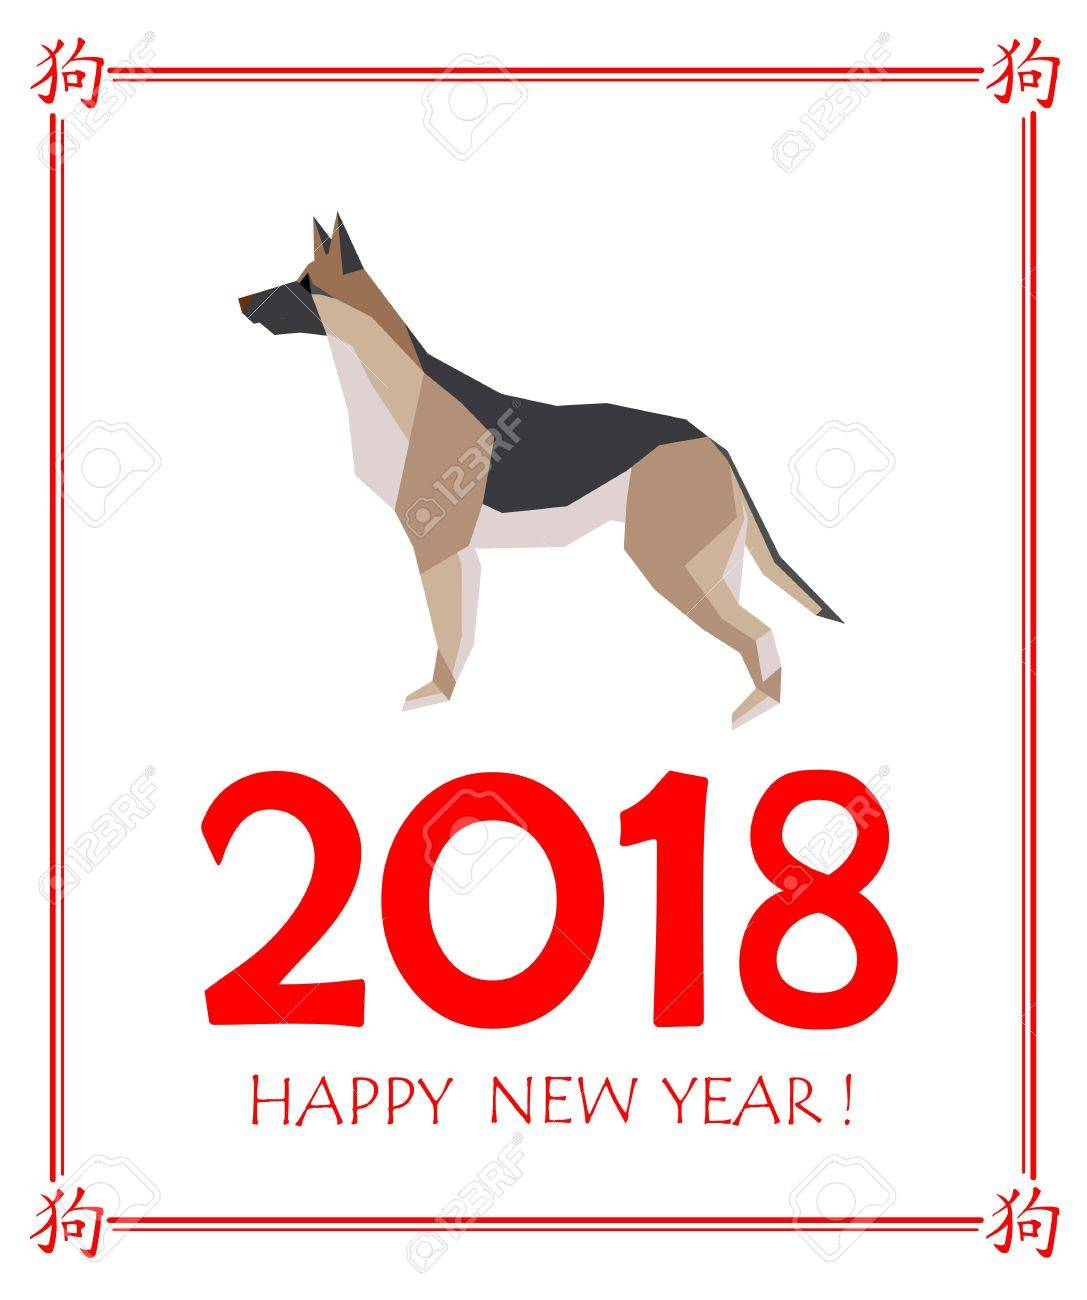 Greeting card for 2018 new year with dog german shepherd and greeting card for 2018 new year with dog german shepherd and red hieroglyph frame stock vector m4hsunfo